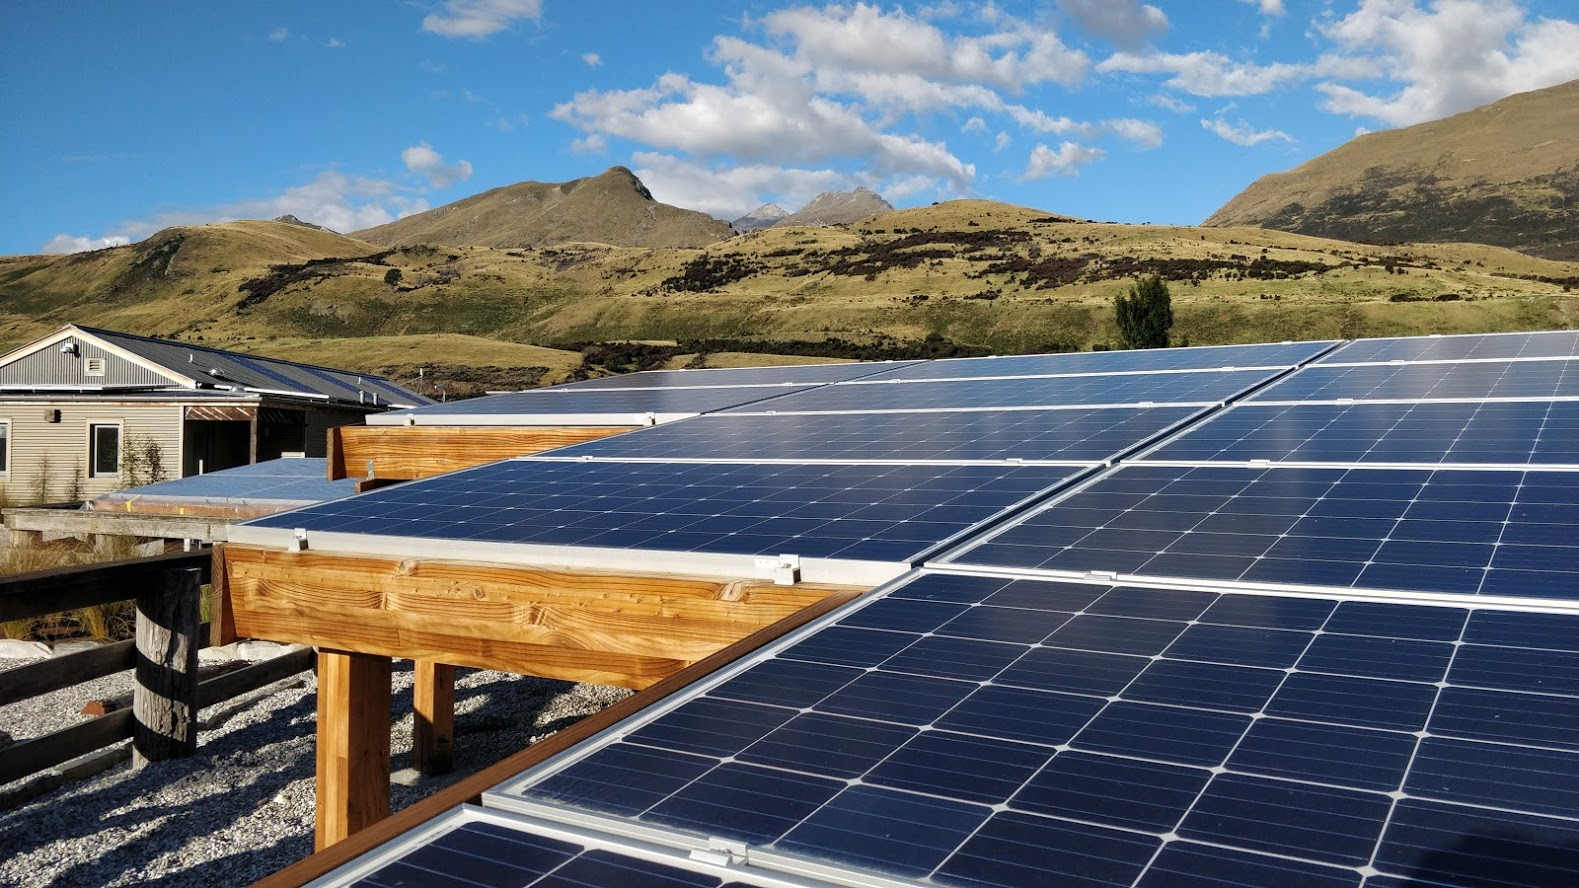 PV solar garden at Camp Glenorchy